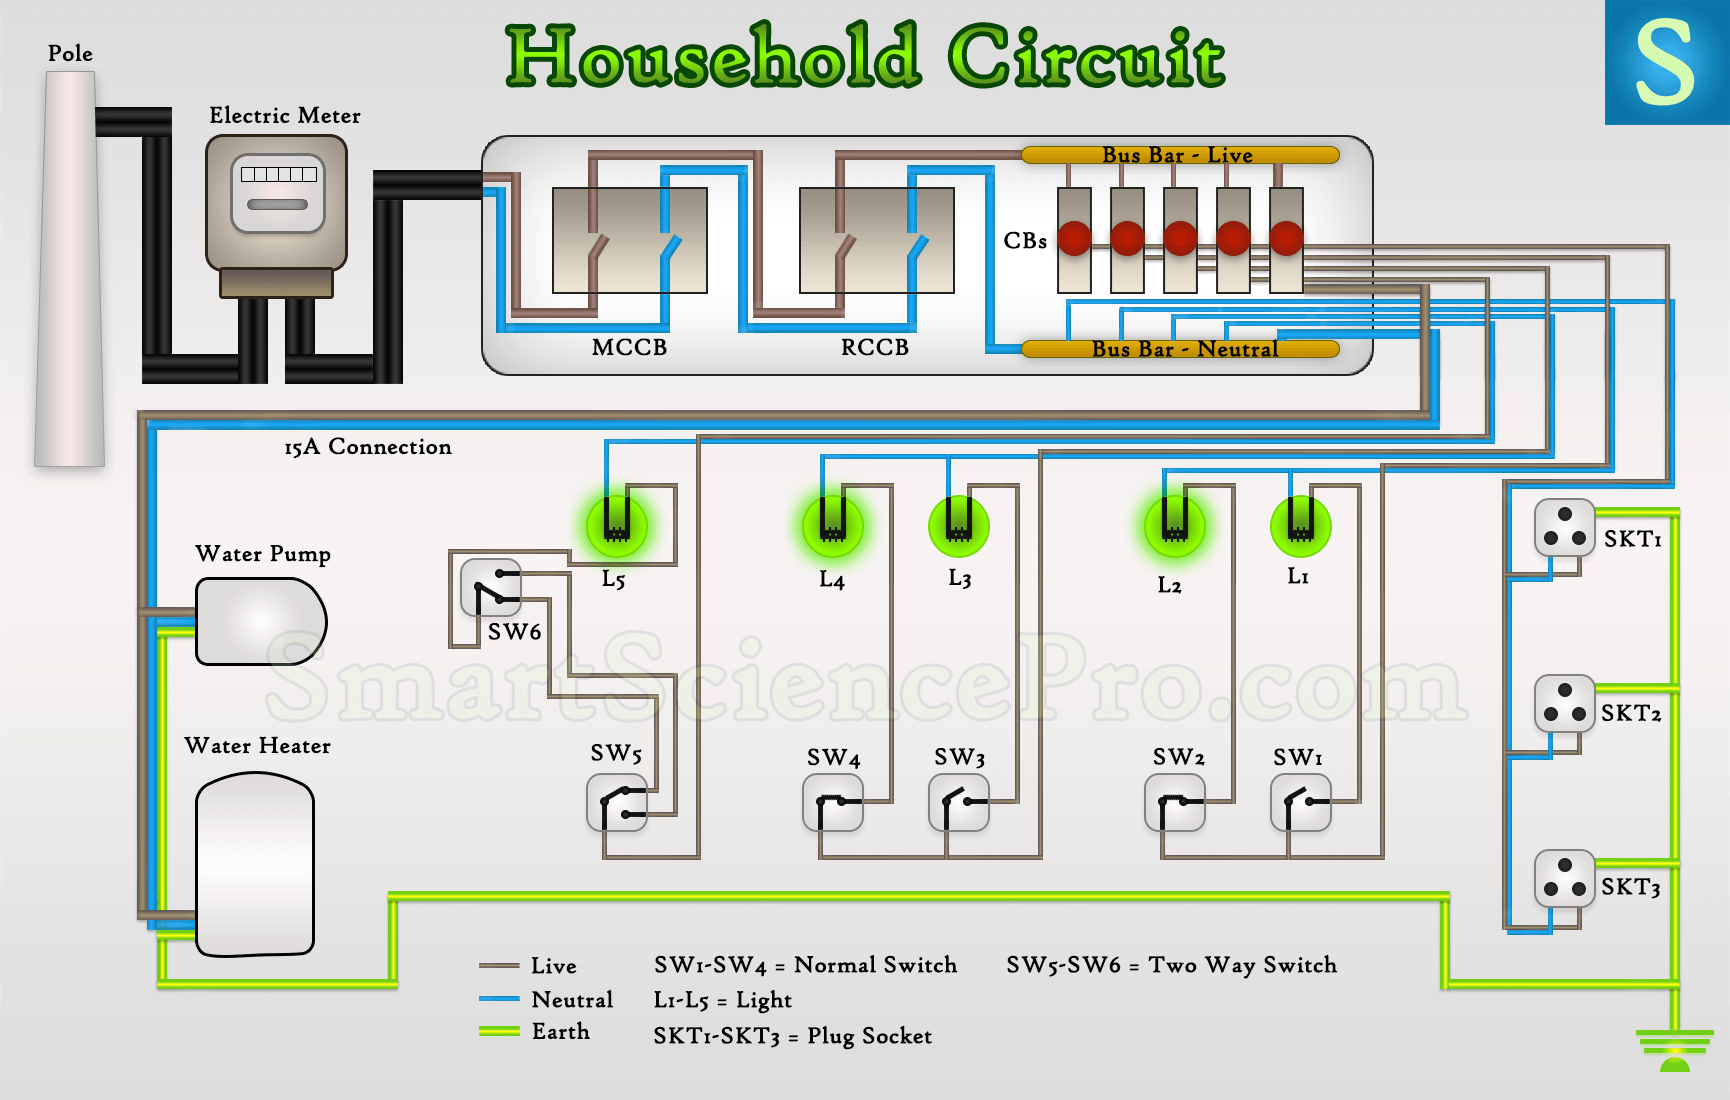 Fantastic A Typical House Electrical Wiring In Wiring Diagram Wiring Cloud Eachirenstrafr09Org